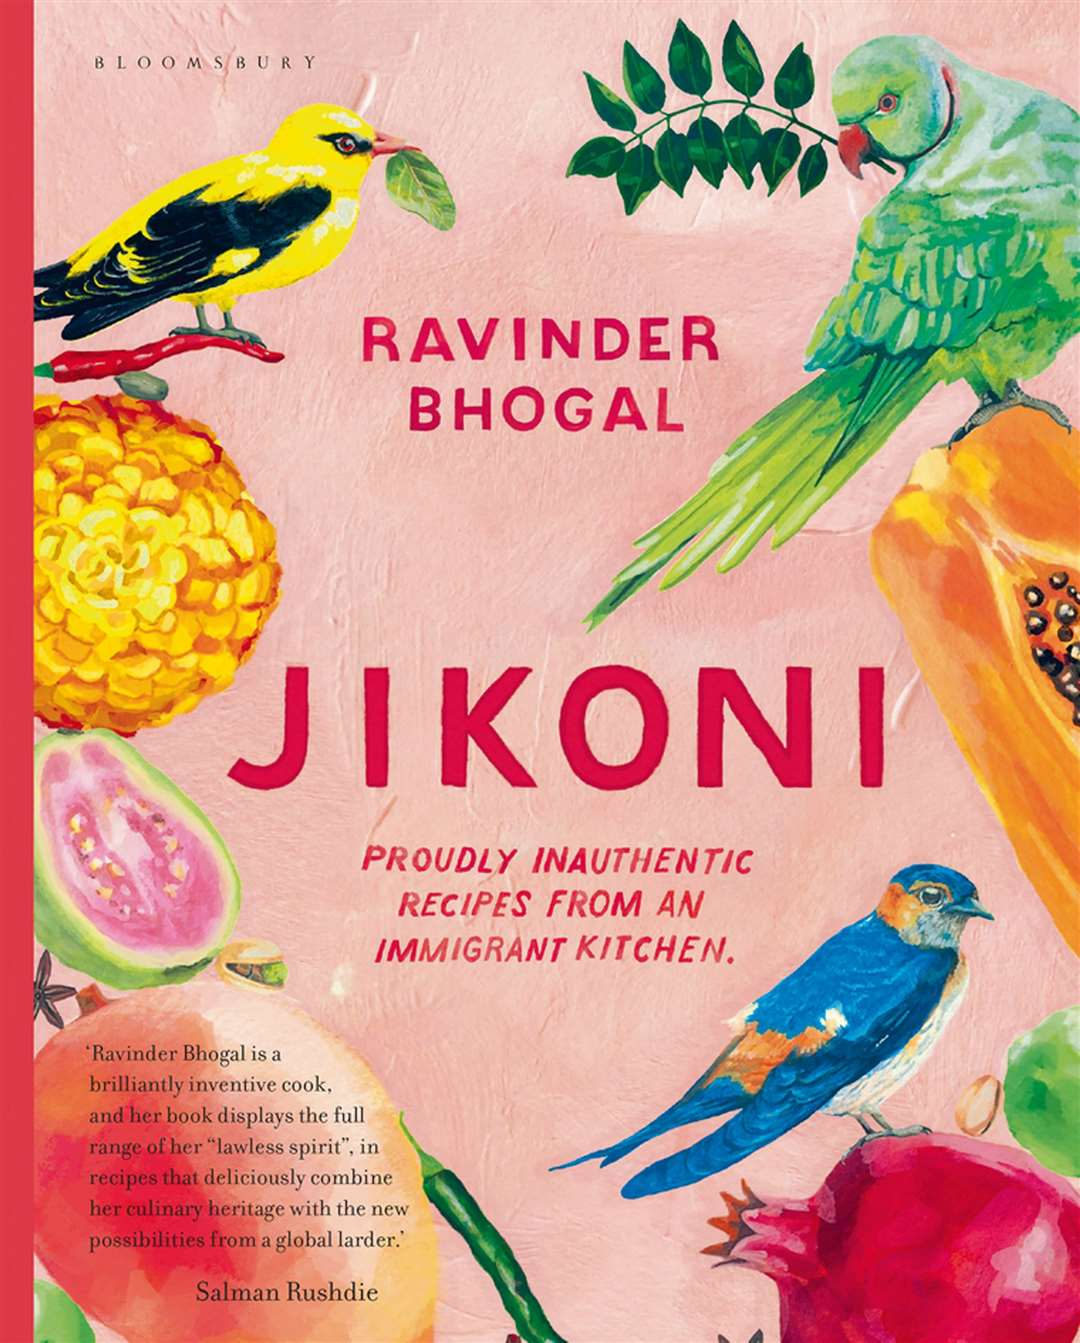 Jikoni: Proudly Inauthentic Recipes from an Immigrant Kitchen by Ravinder Bhogal.